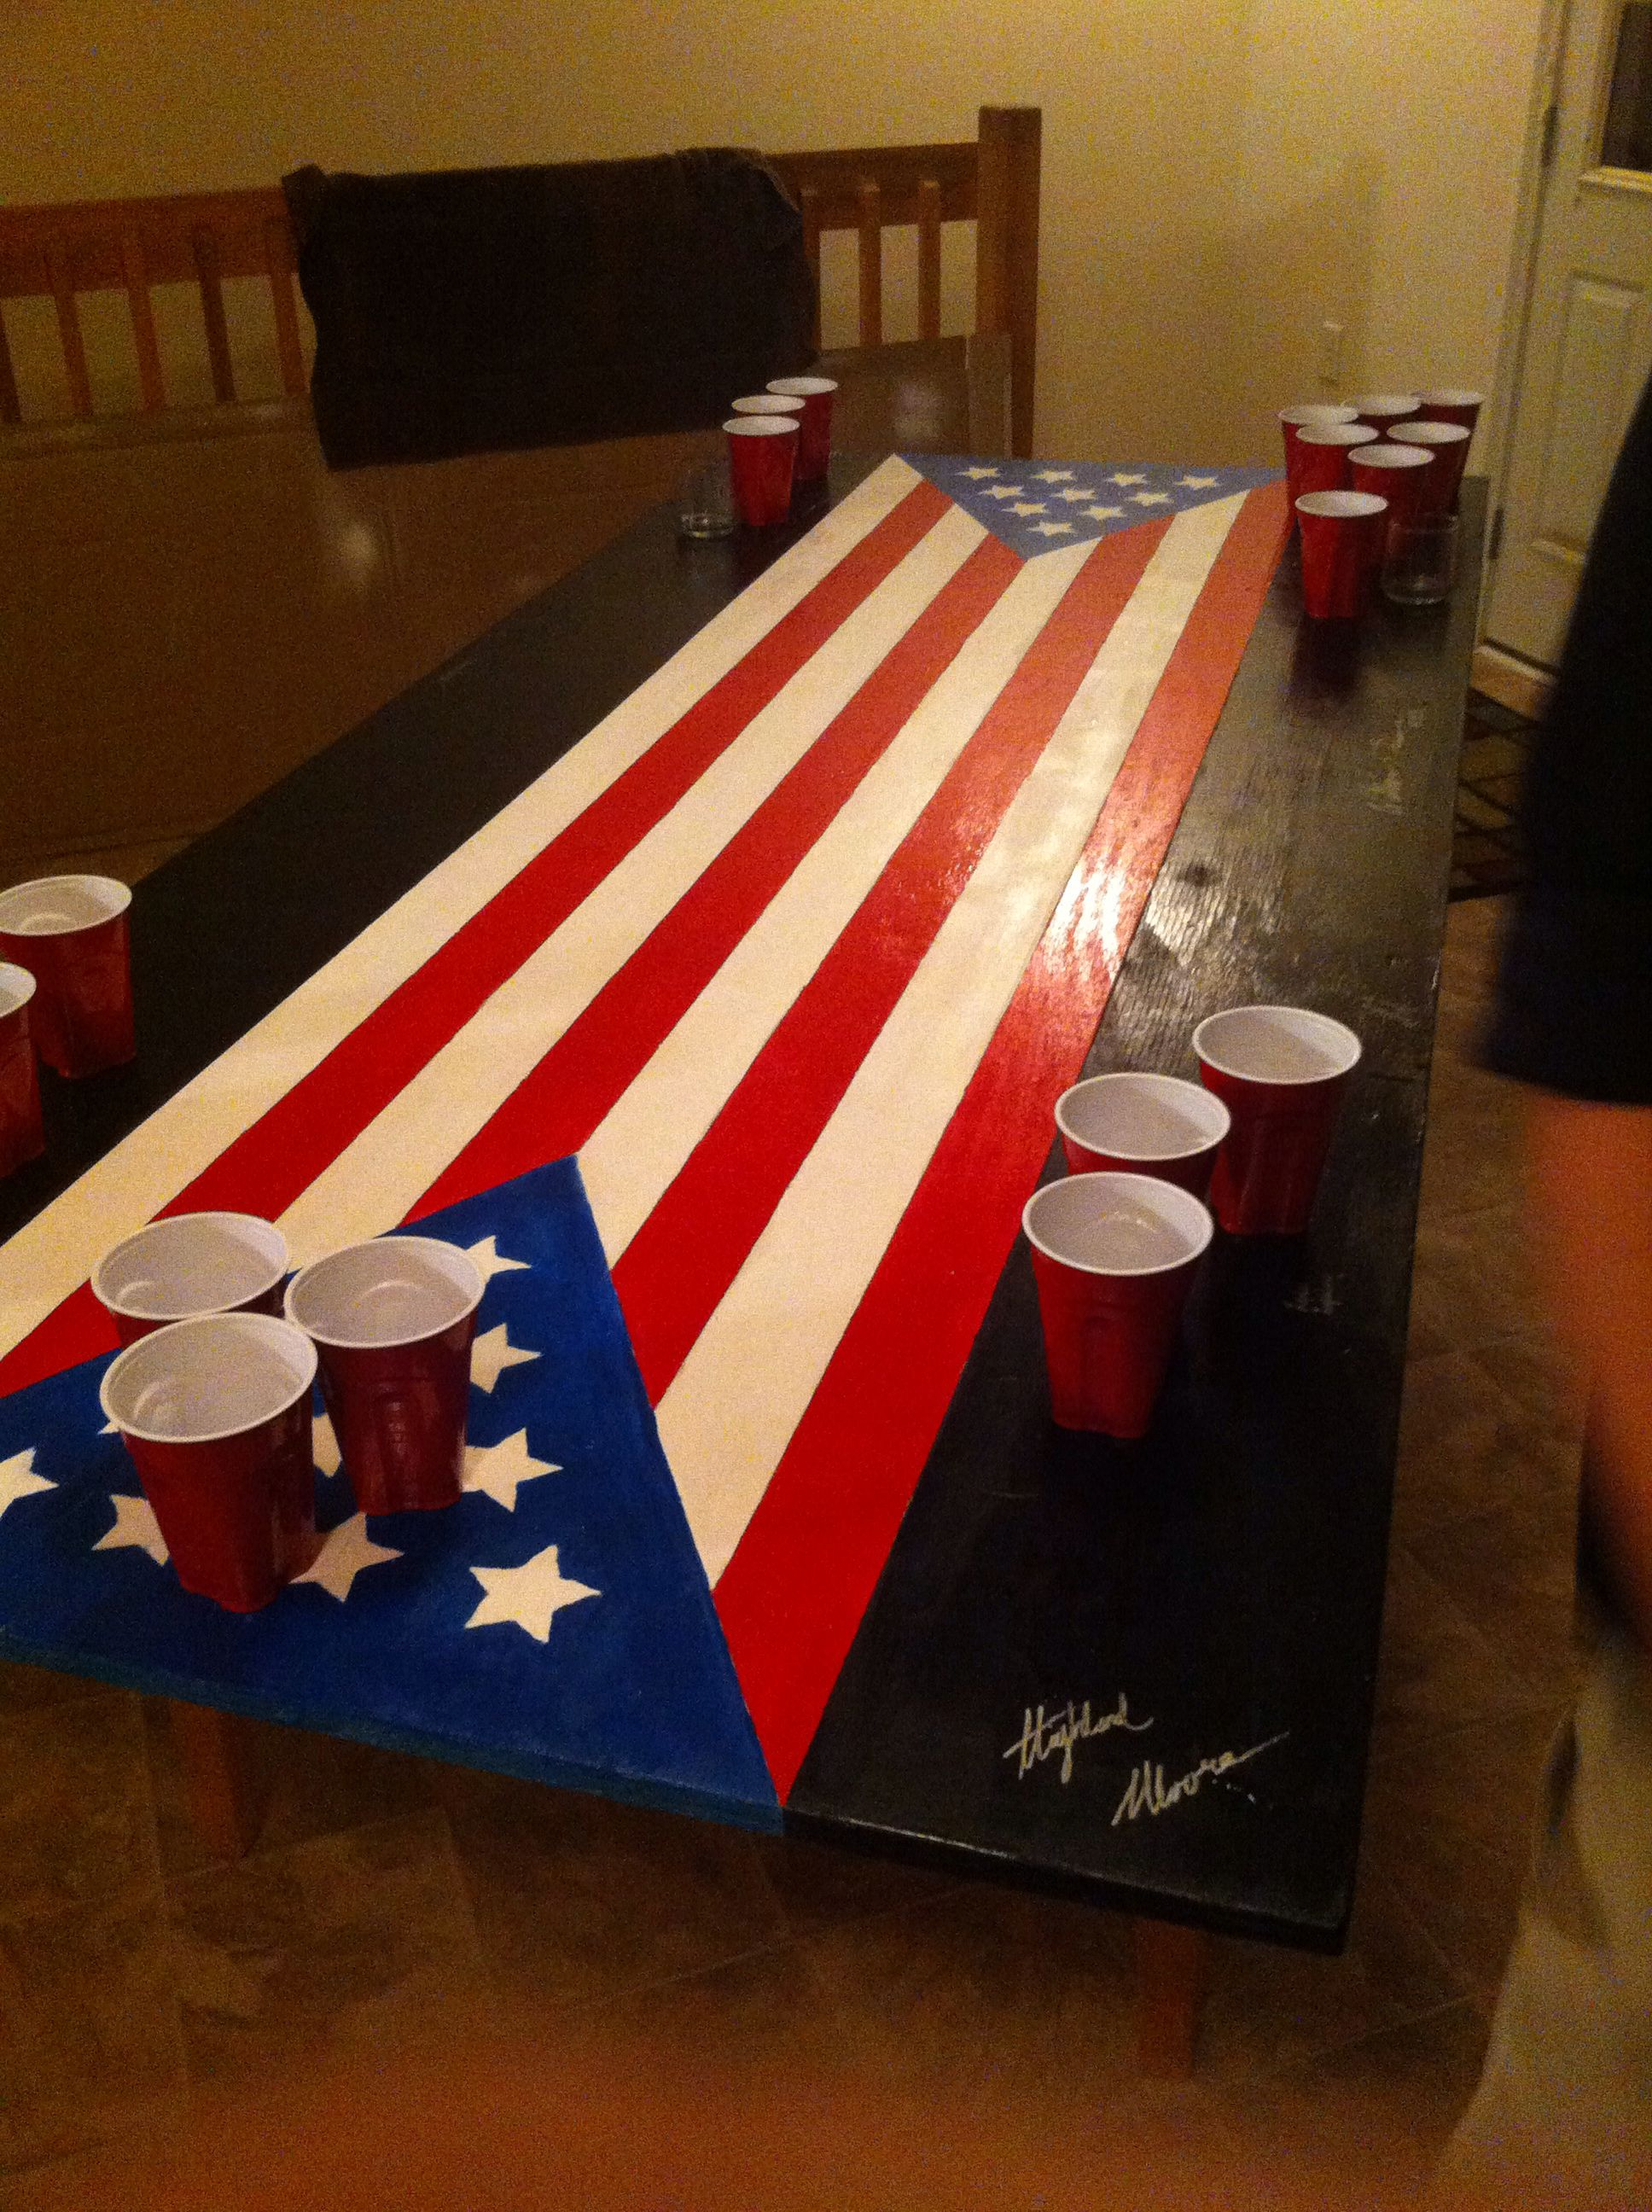 Beer pong table dimensions - Butterfly Easifold 19 Rollaway Table Tennis Table Beer Pong